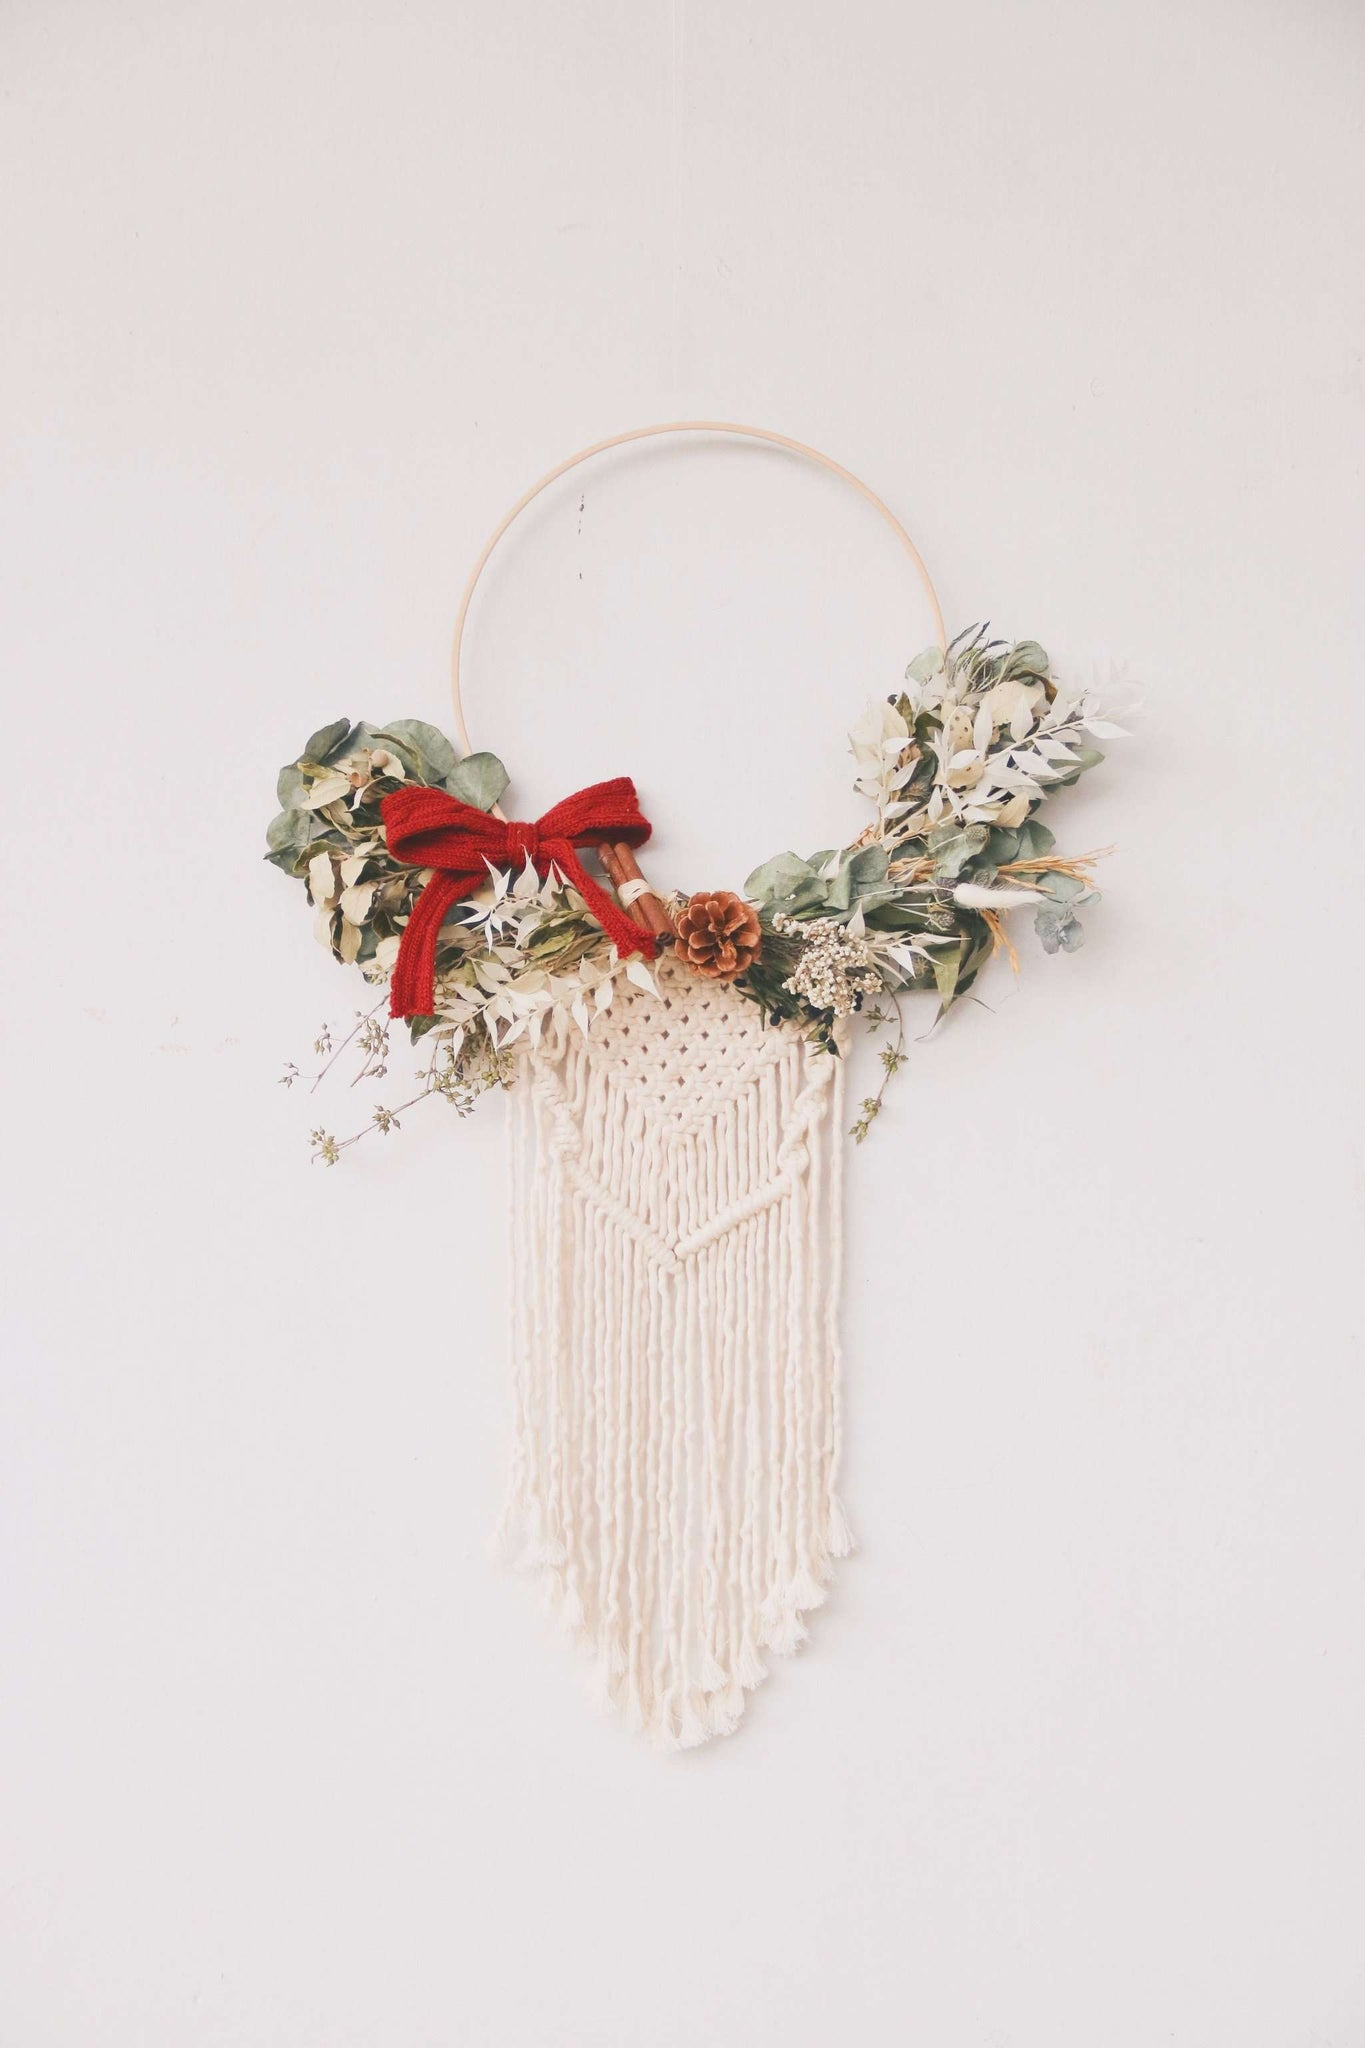 Christmas '19 | Knoette x Hello Flowers! Macrame Wreath